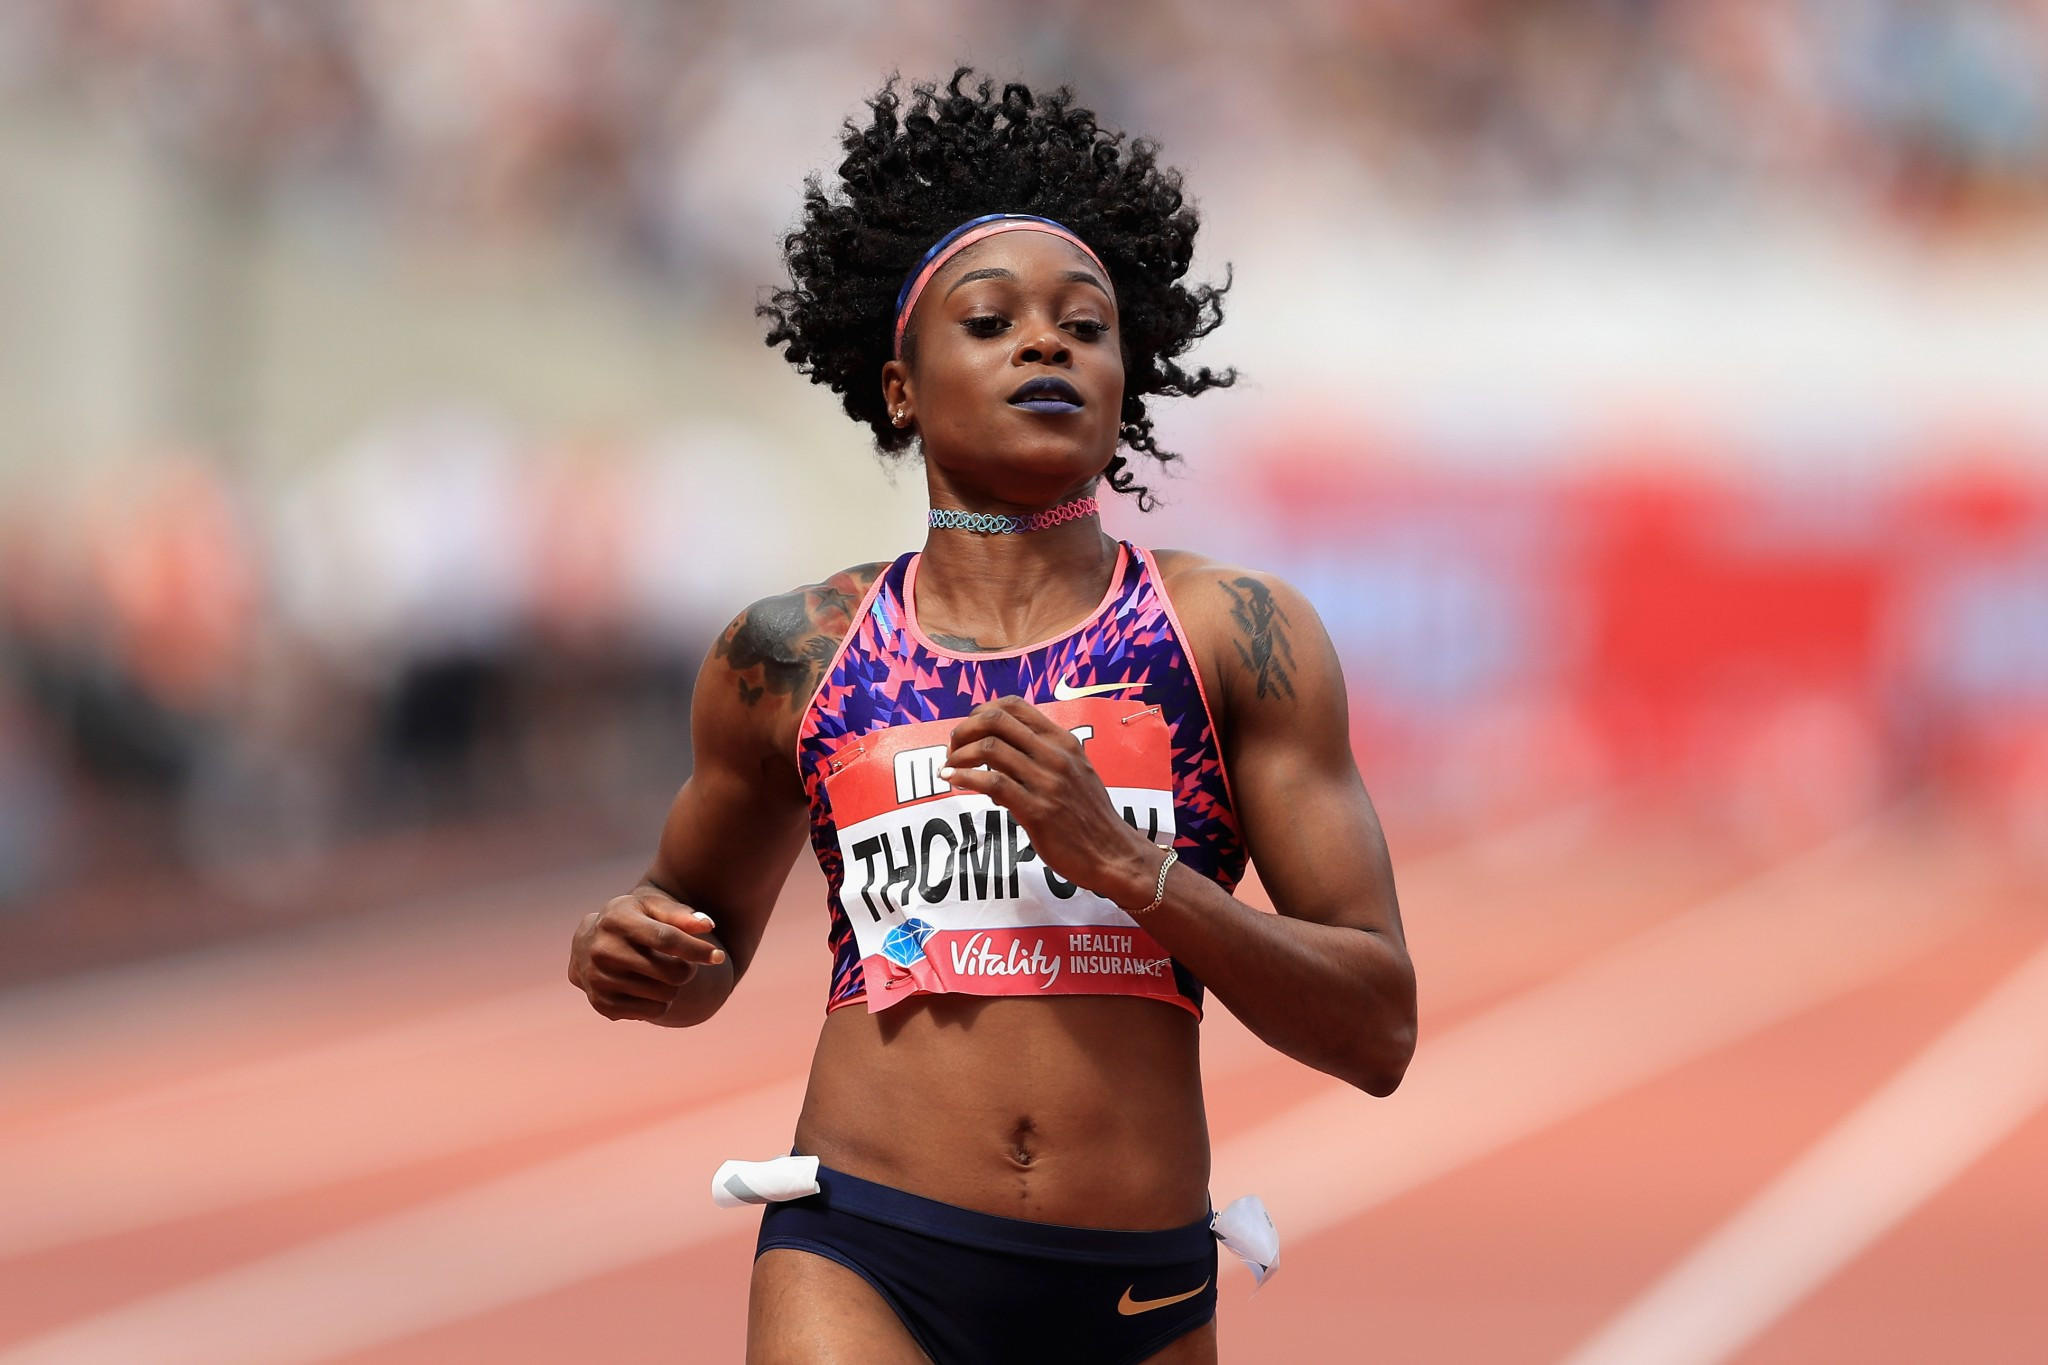 Jamaica's Olympic 100 and 200m champion Elaine Thompson will seek a first individual world title in London ©Getty Images